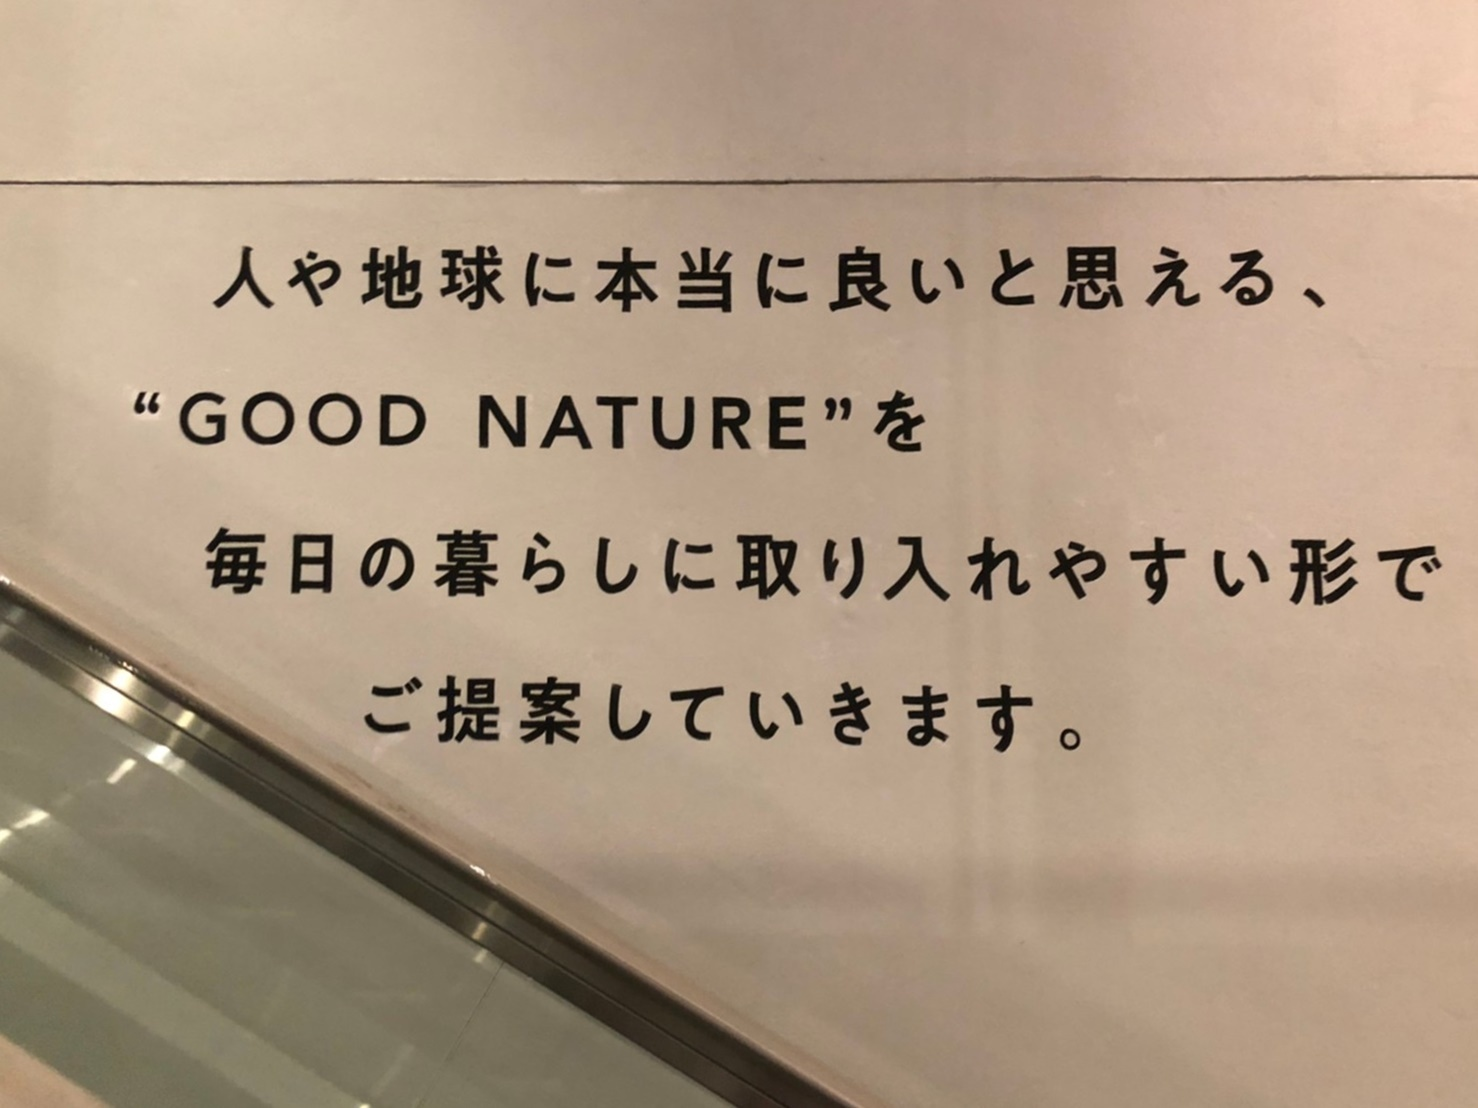 GOOD NATURE STATION 初夏のおもたせBセット